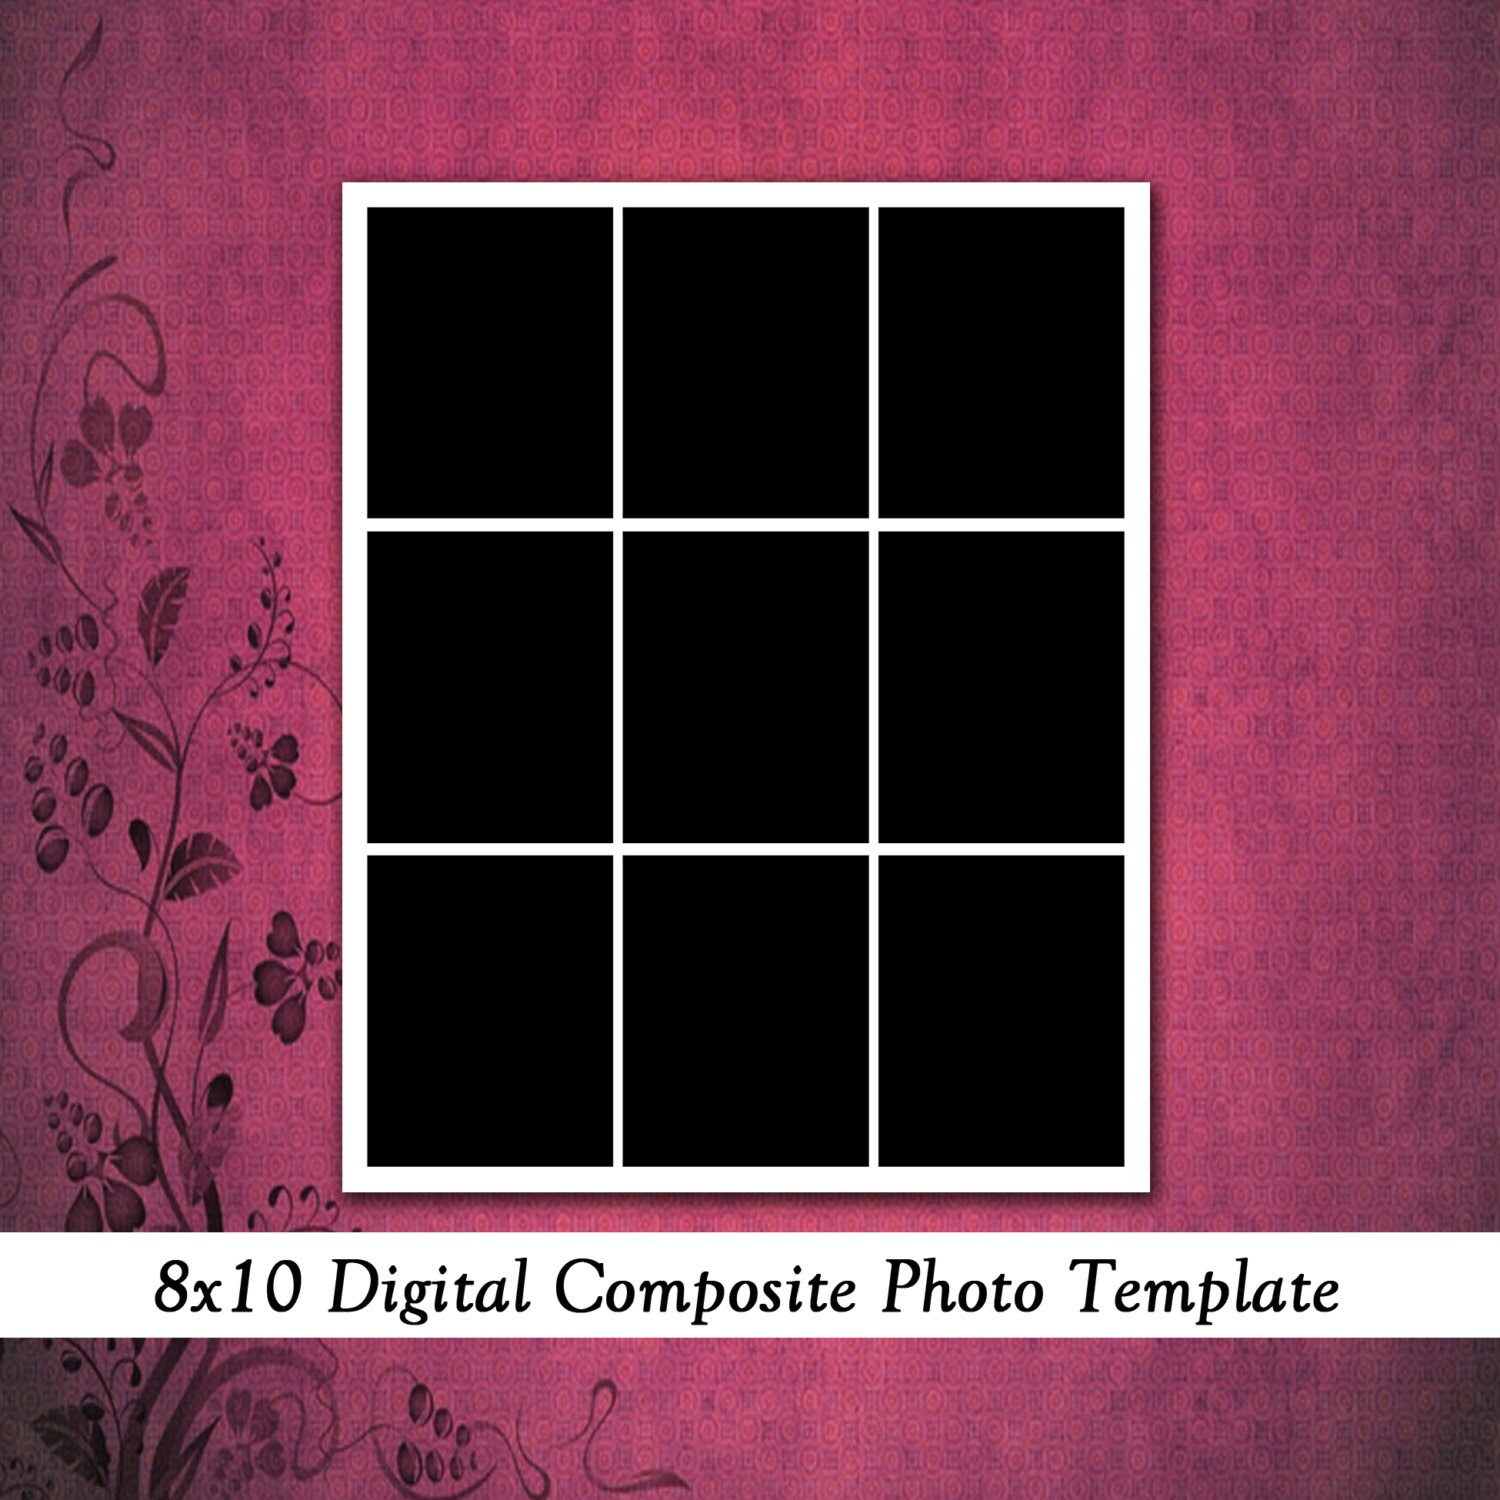 8x10 digital photo template photo collage by. Black Bedroom Furniture Sets. Home Design Ideas